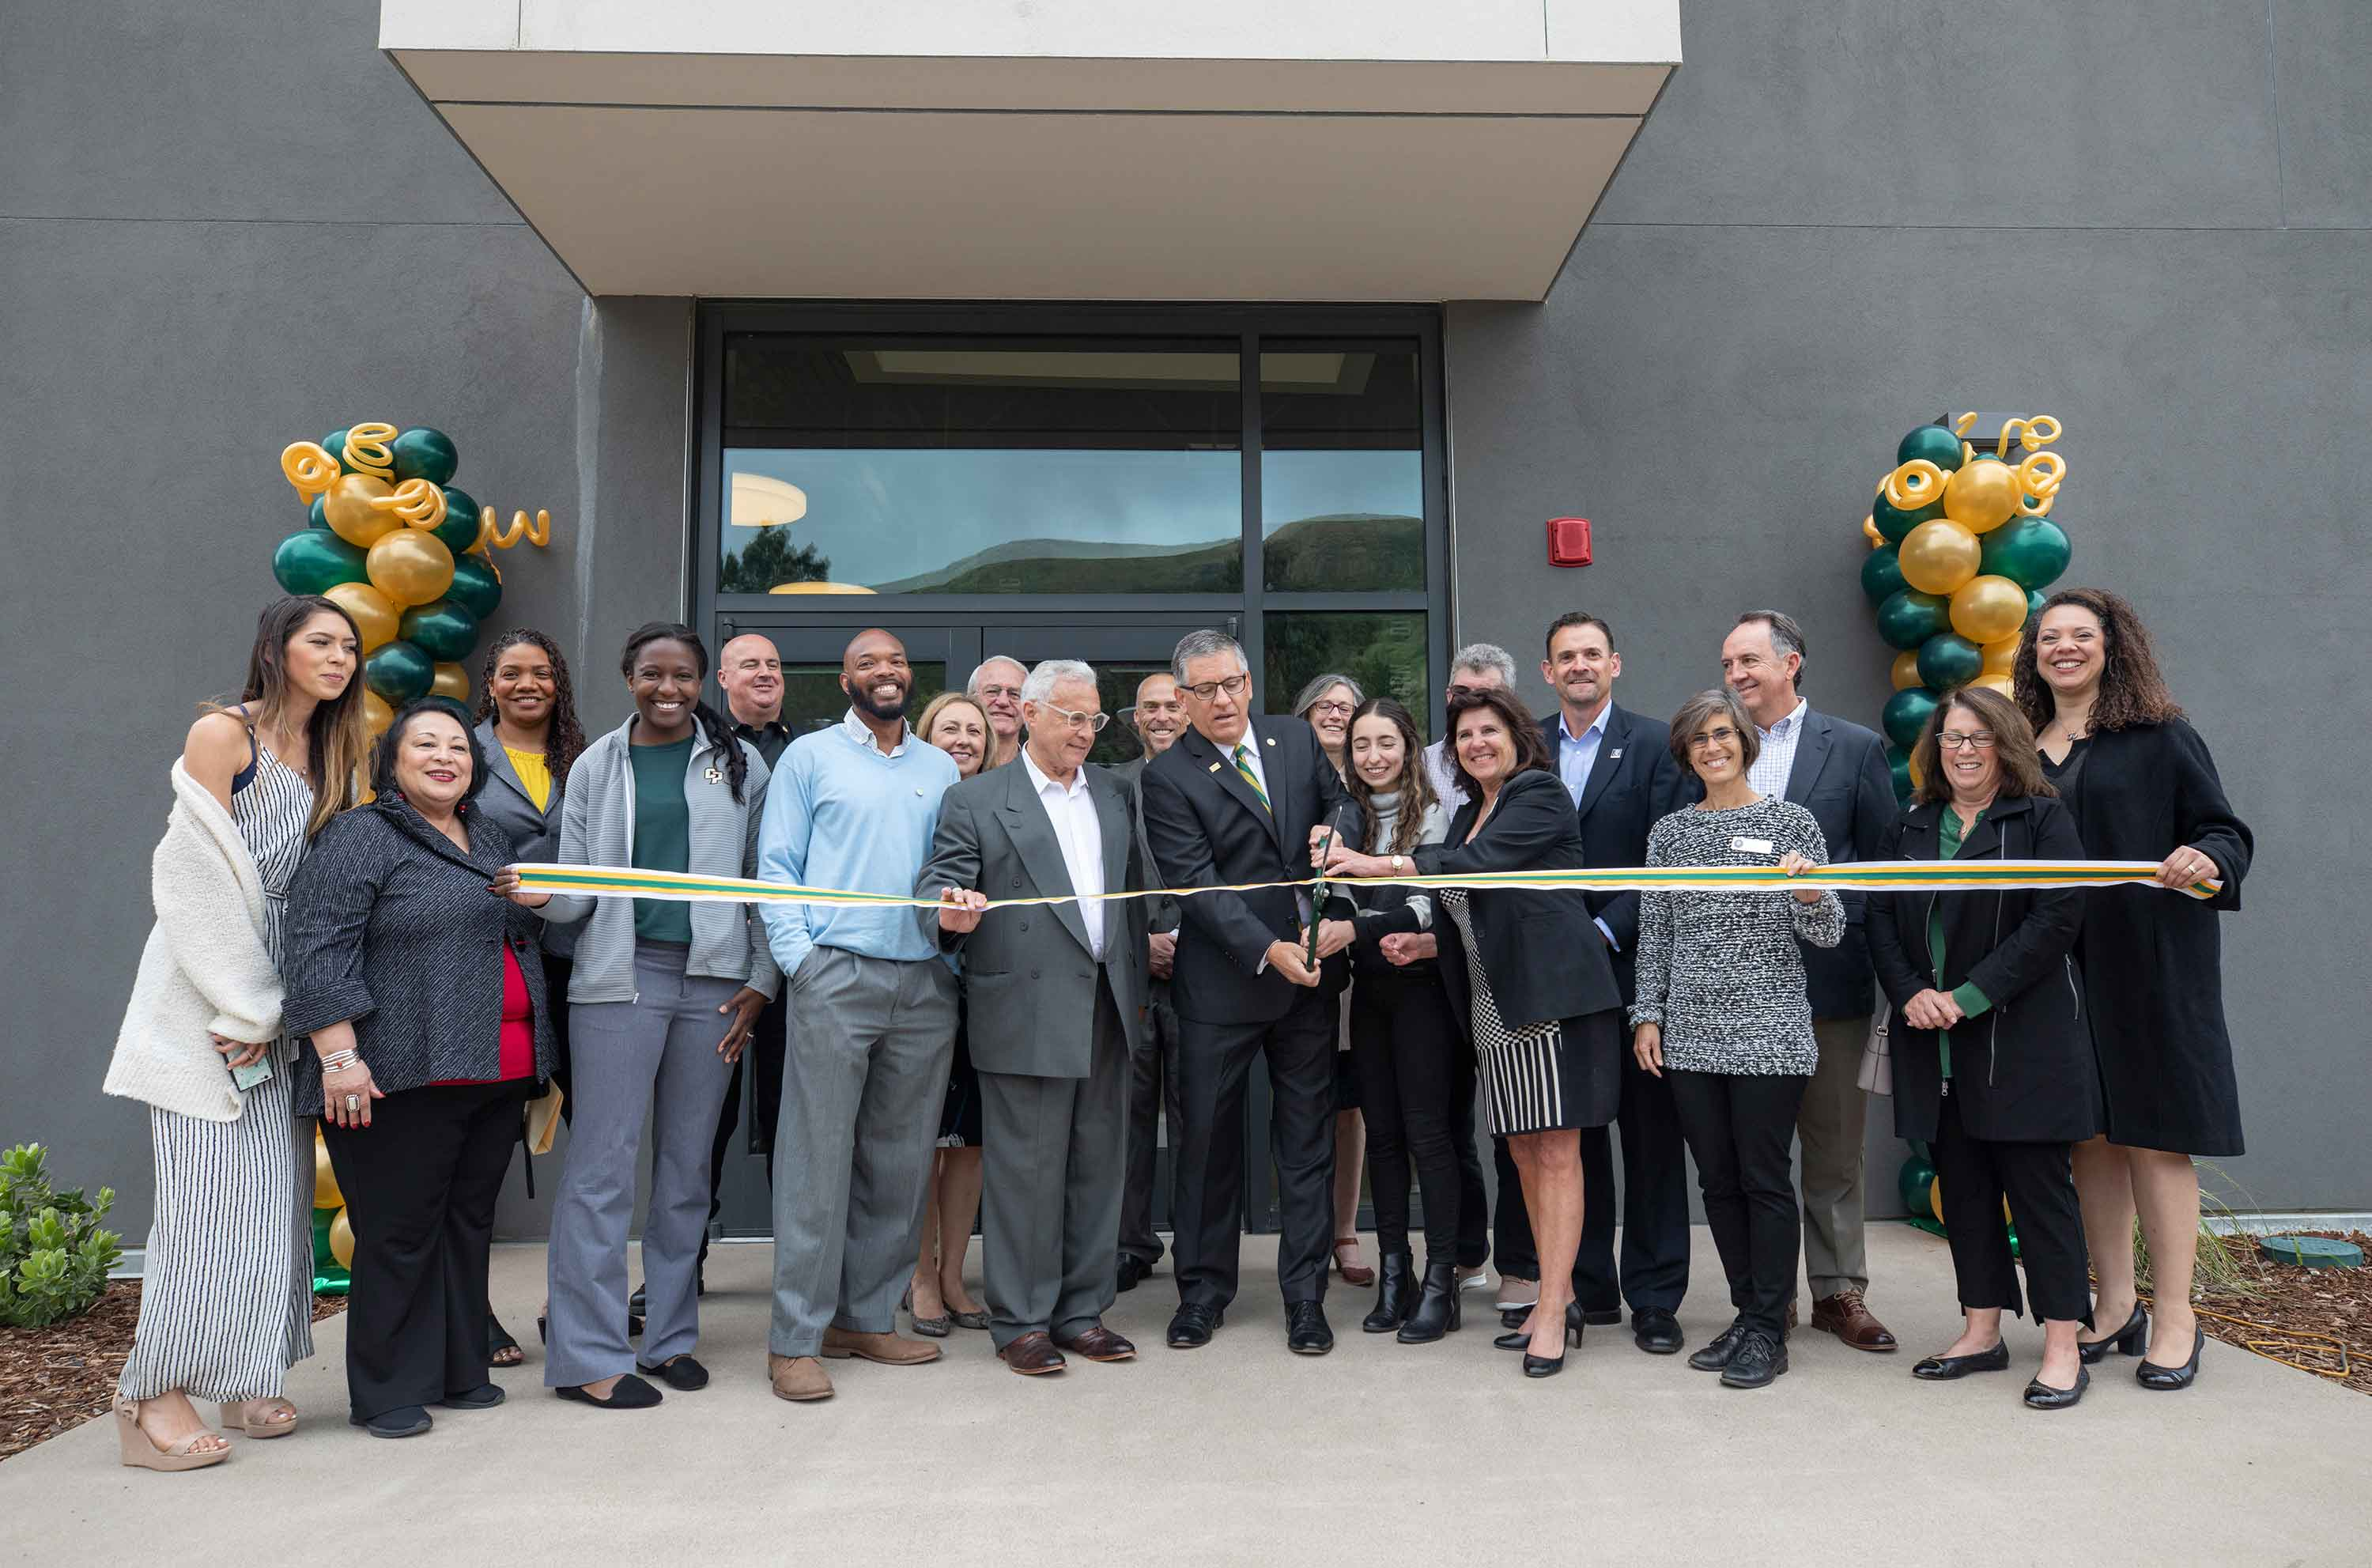 President Armstrong and other university and community leaders cut the ribbon on the new Welcome Center on April 30